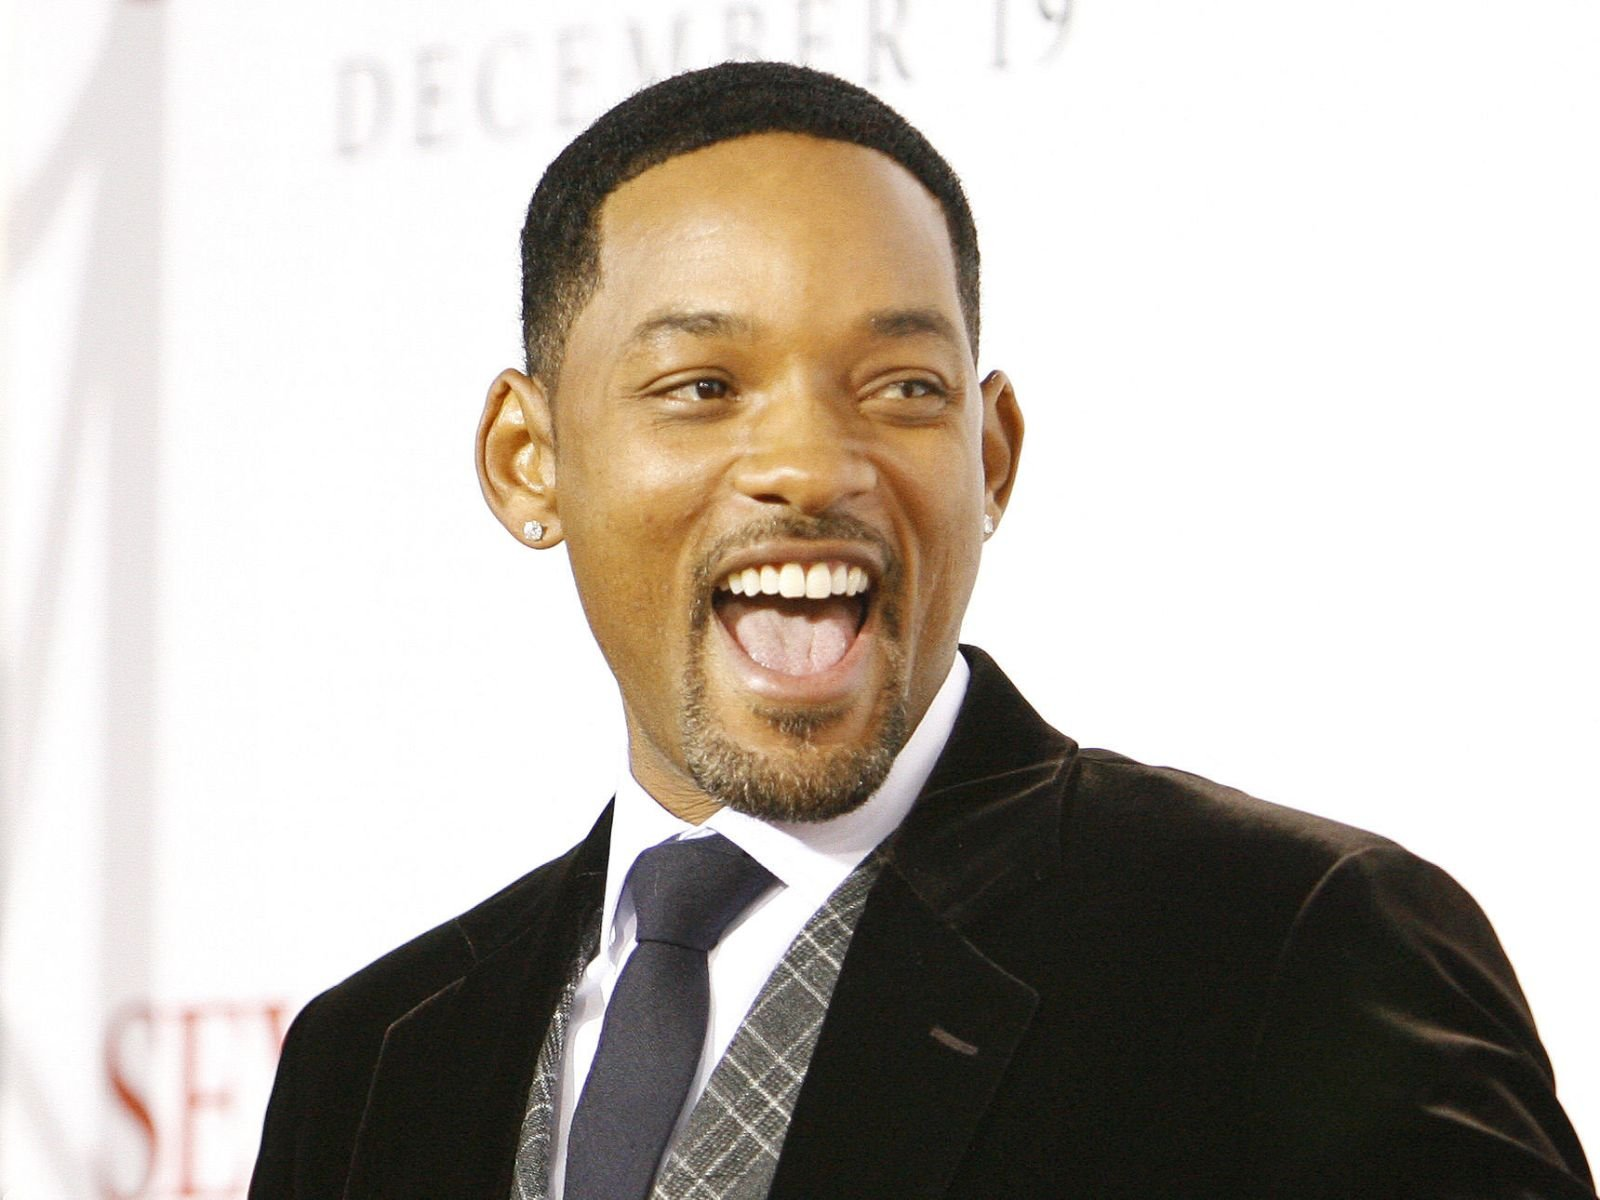 will-smith-smile-photos